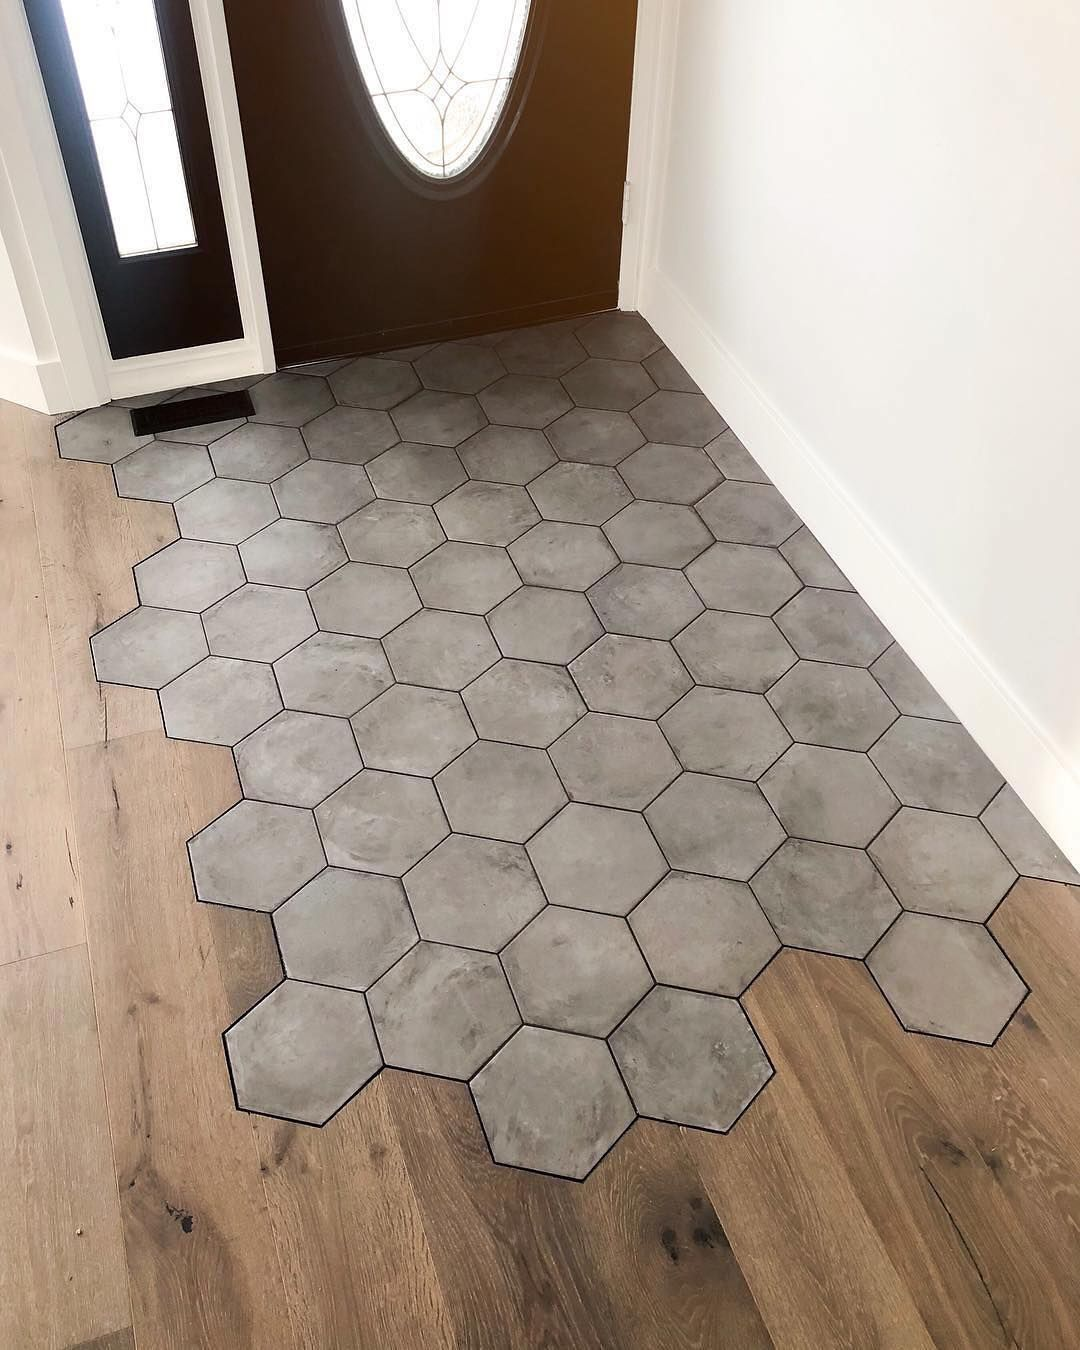 Hexagon Tile Transition Into Wood Flooring By Matt Gibson